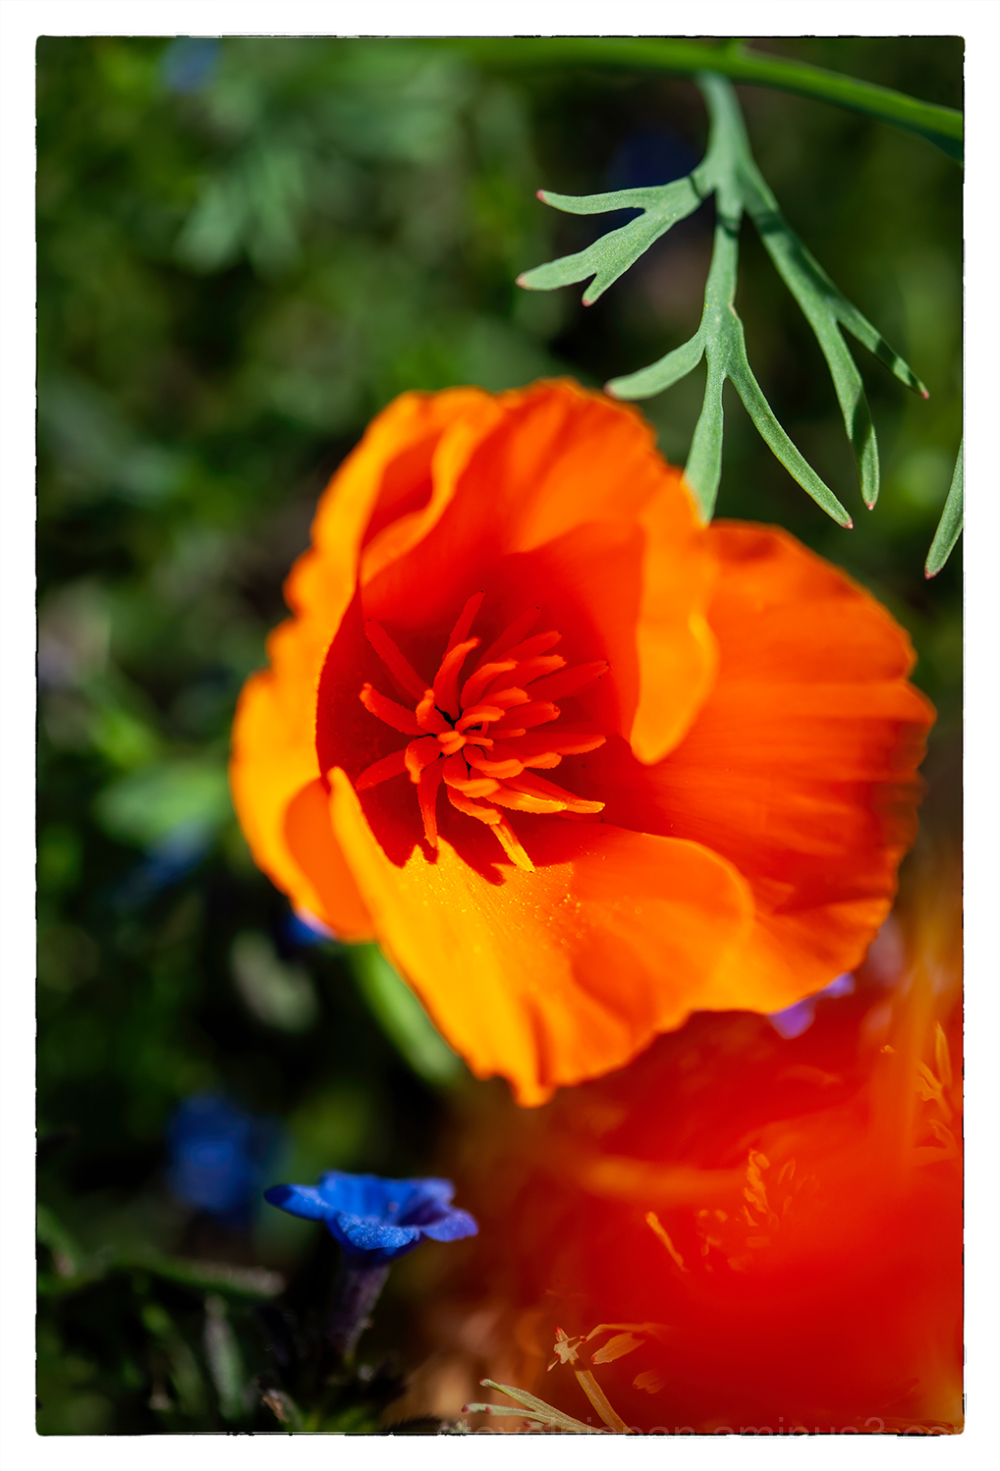 A poppy in the morning light.